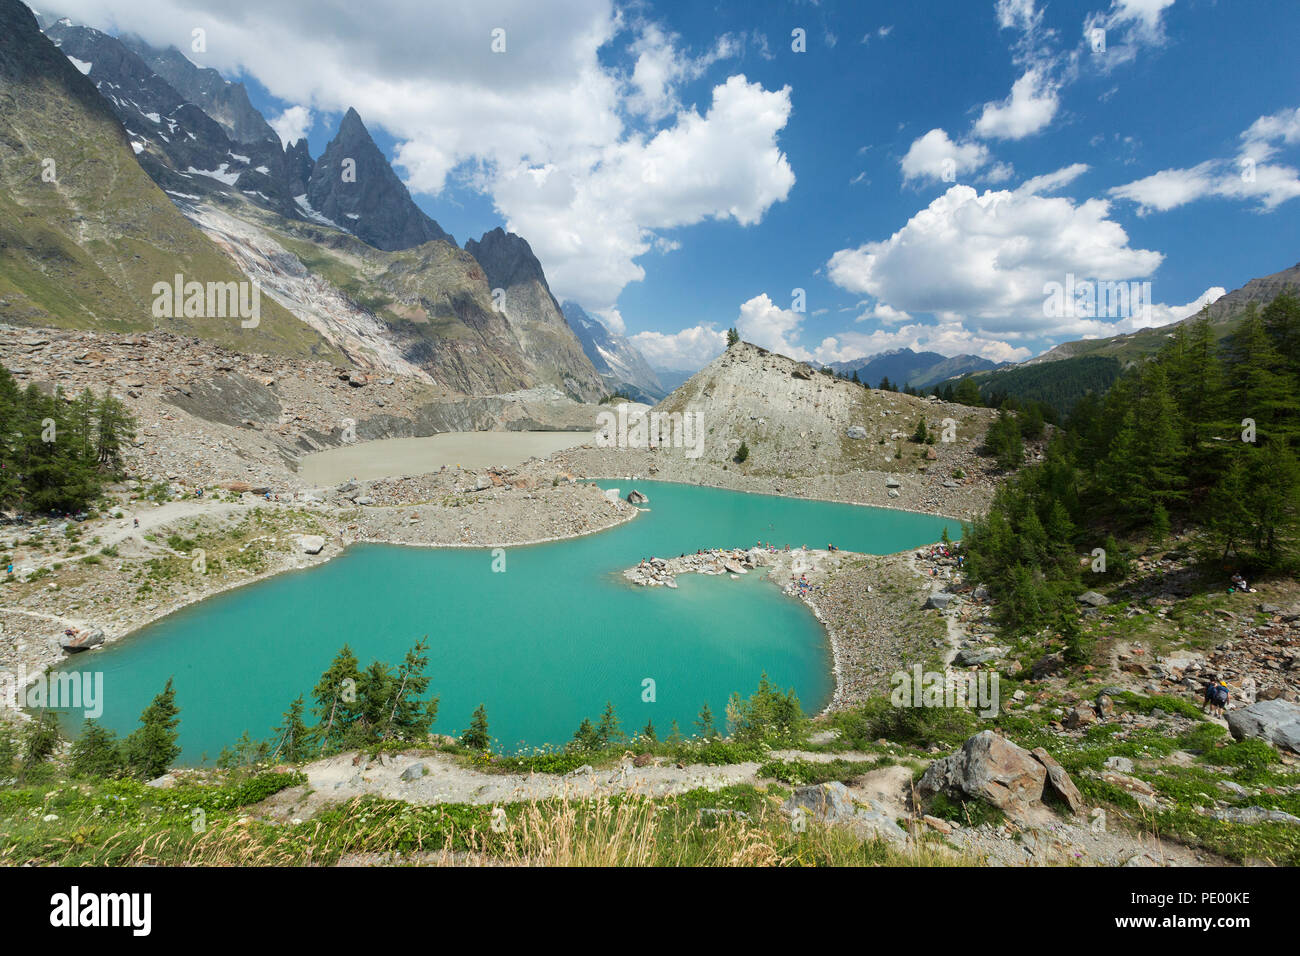 Alpes of Italy, Veny Valley : the Miage Lake and the Peuterey Ridgeline on the background in a sunny day. - Stock Image